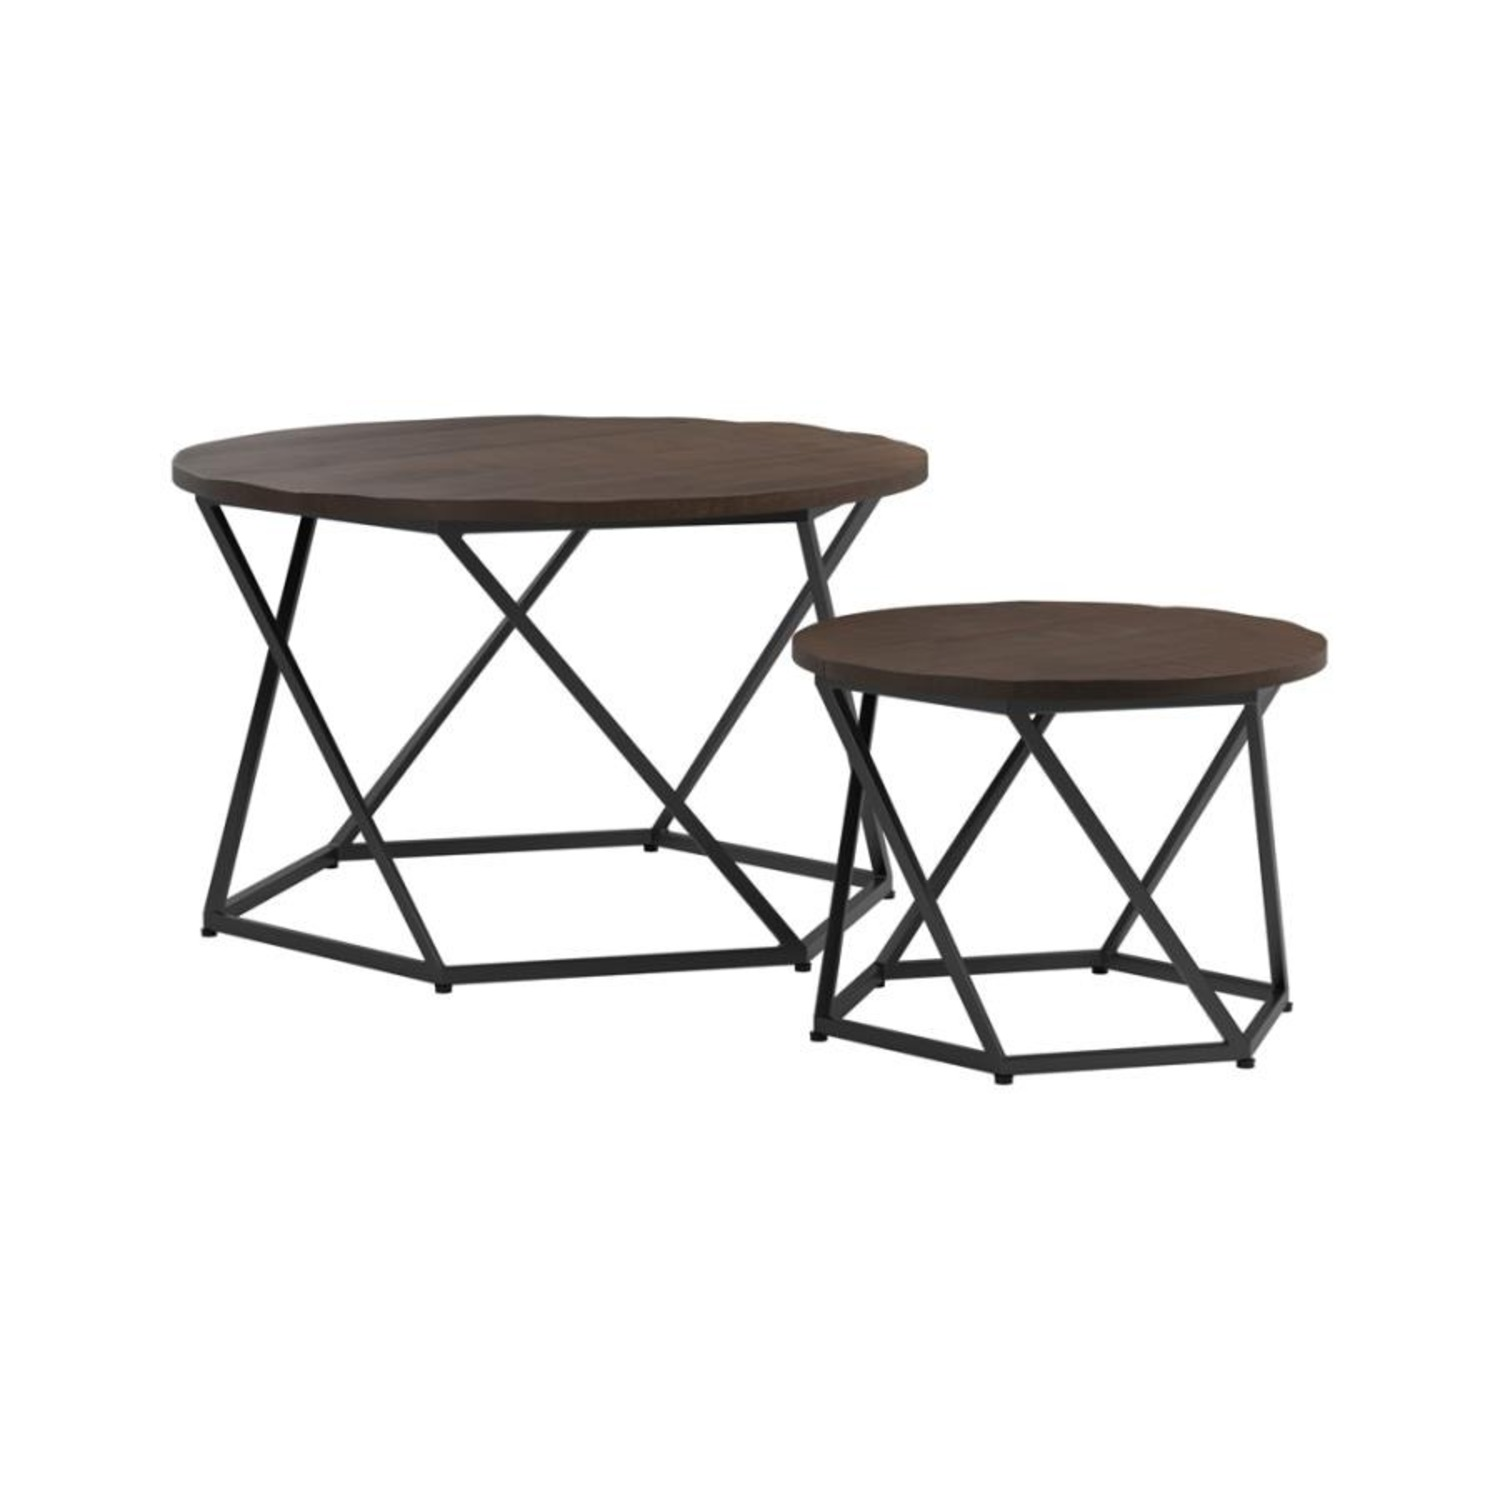 Nesting Table In Natural & Matte Black Finish - image-0